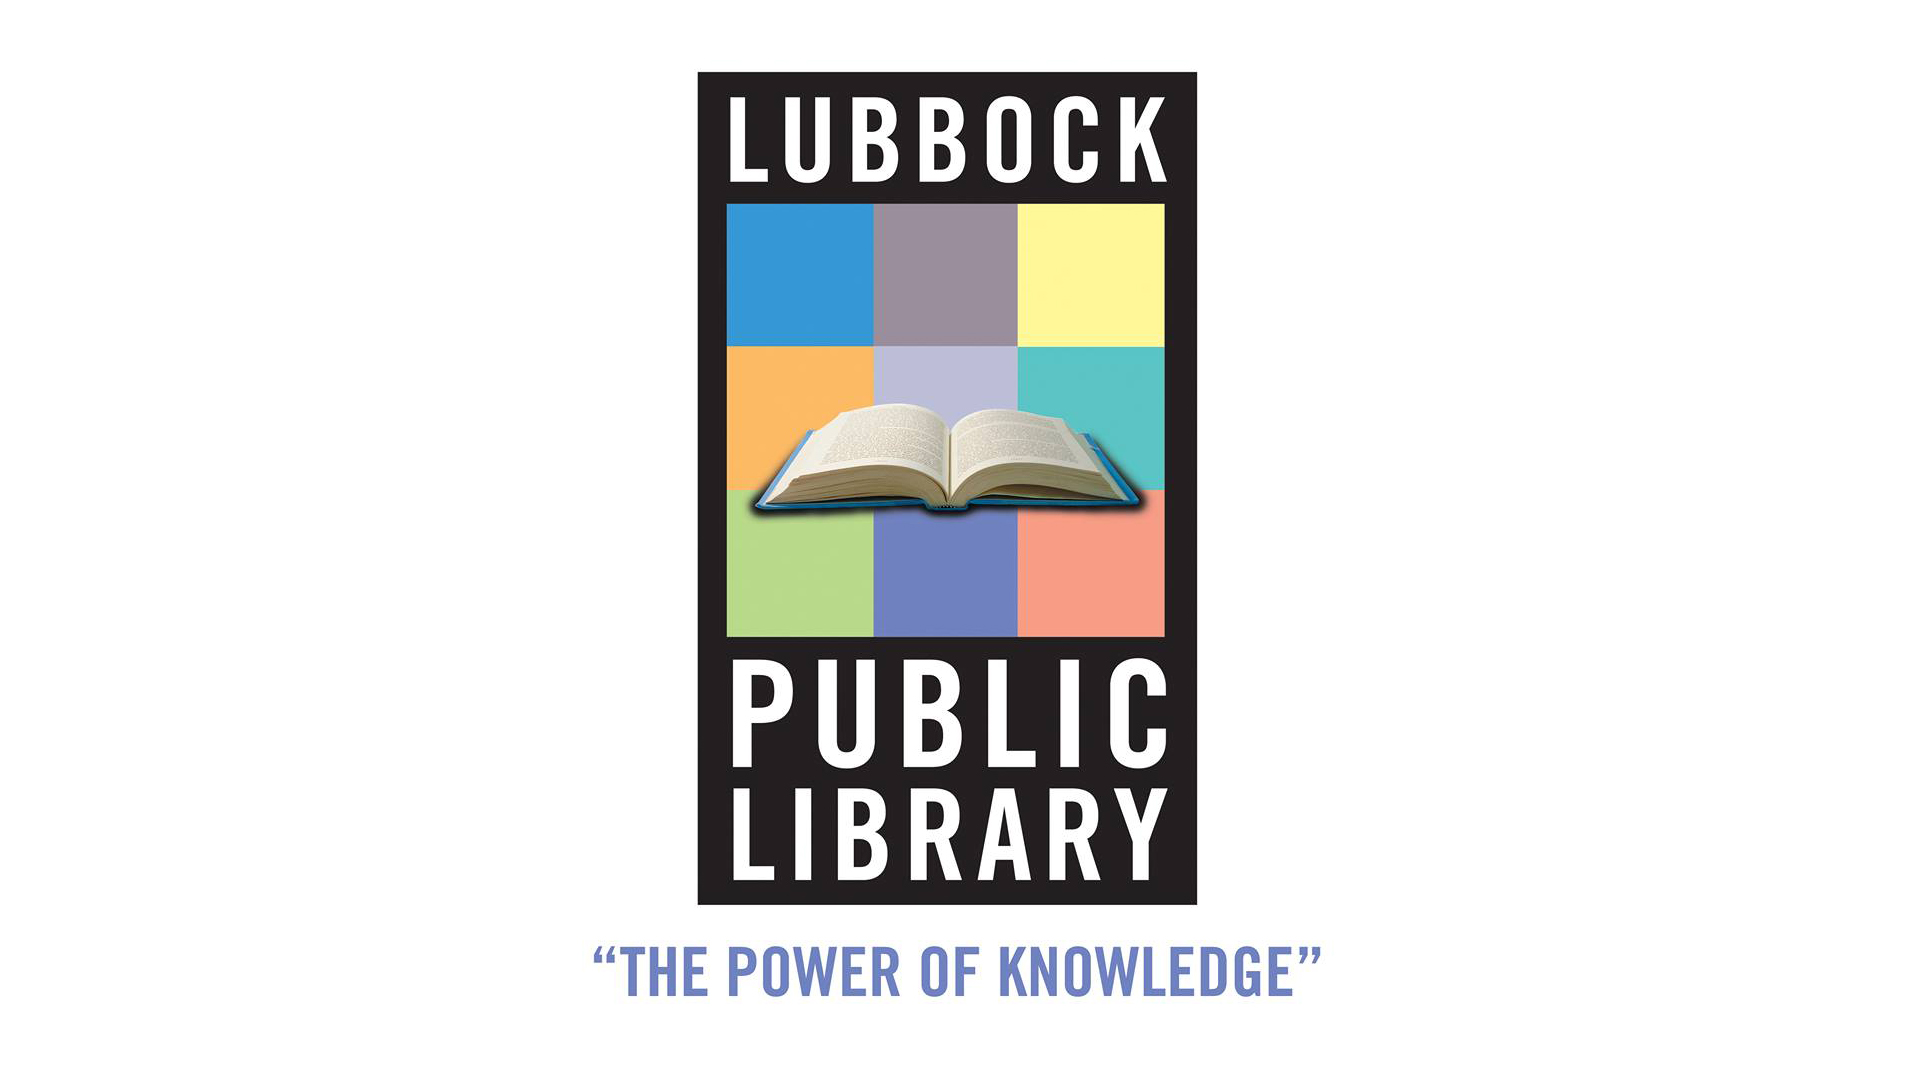 Schedule of upcoming events at the Lubbock Public Library, August 11